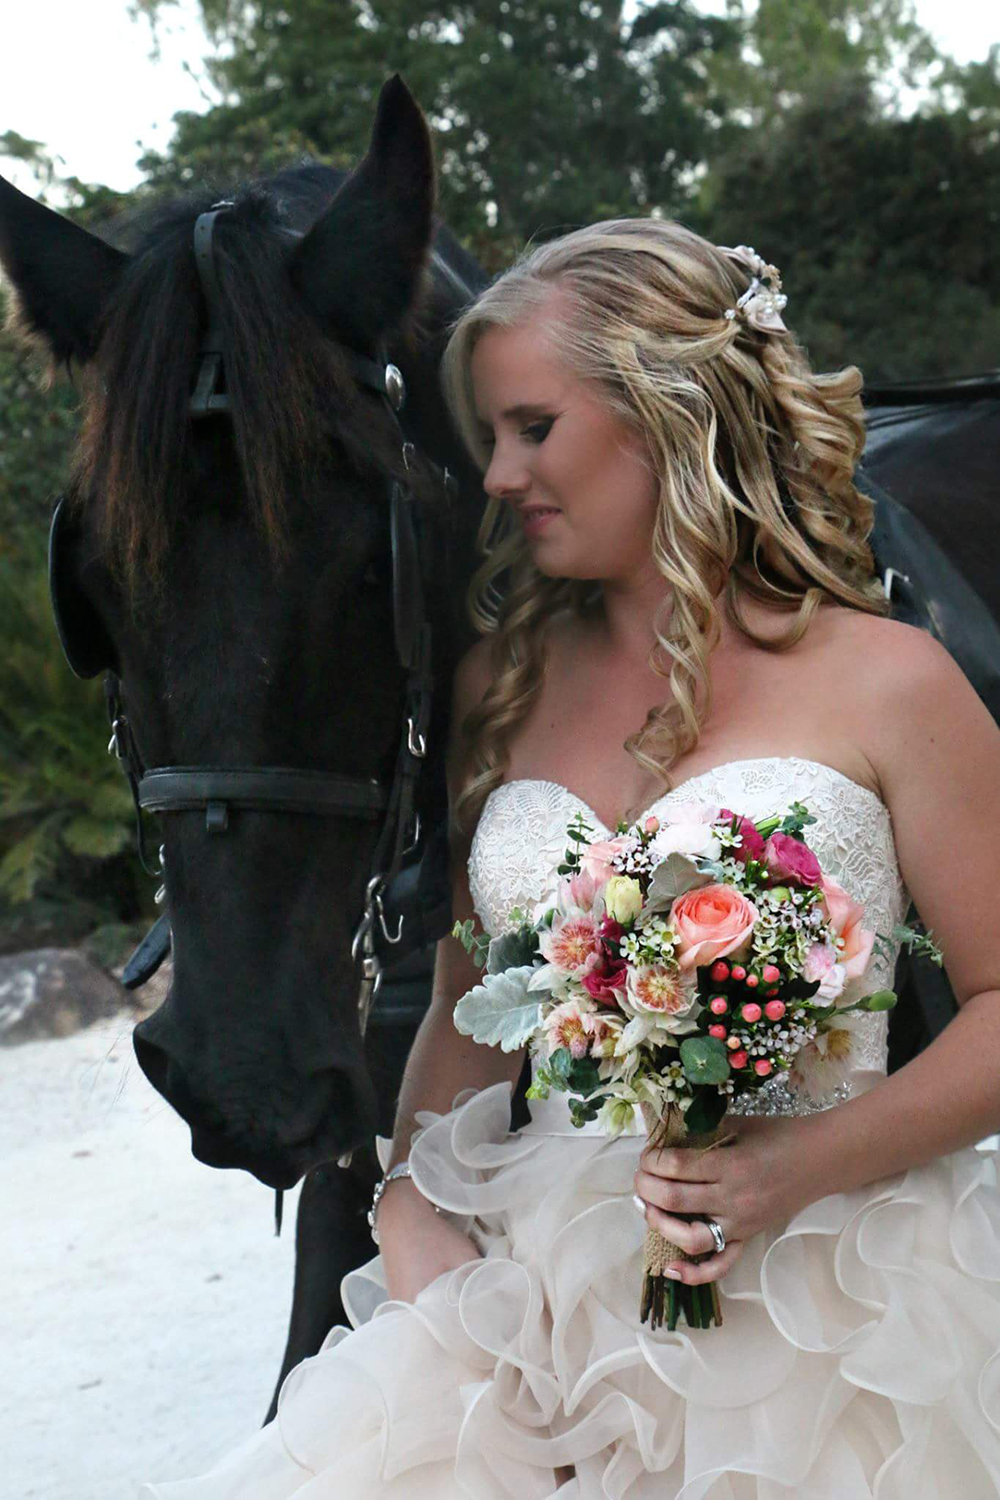 Paradise Country weddings